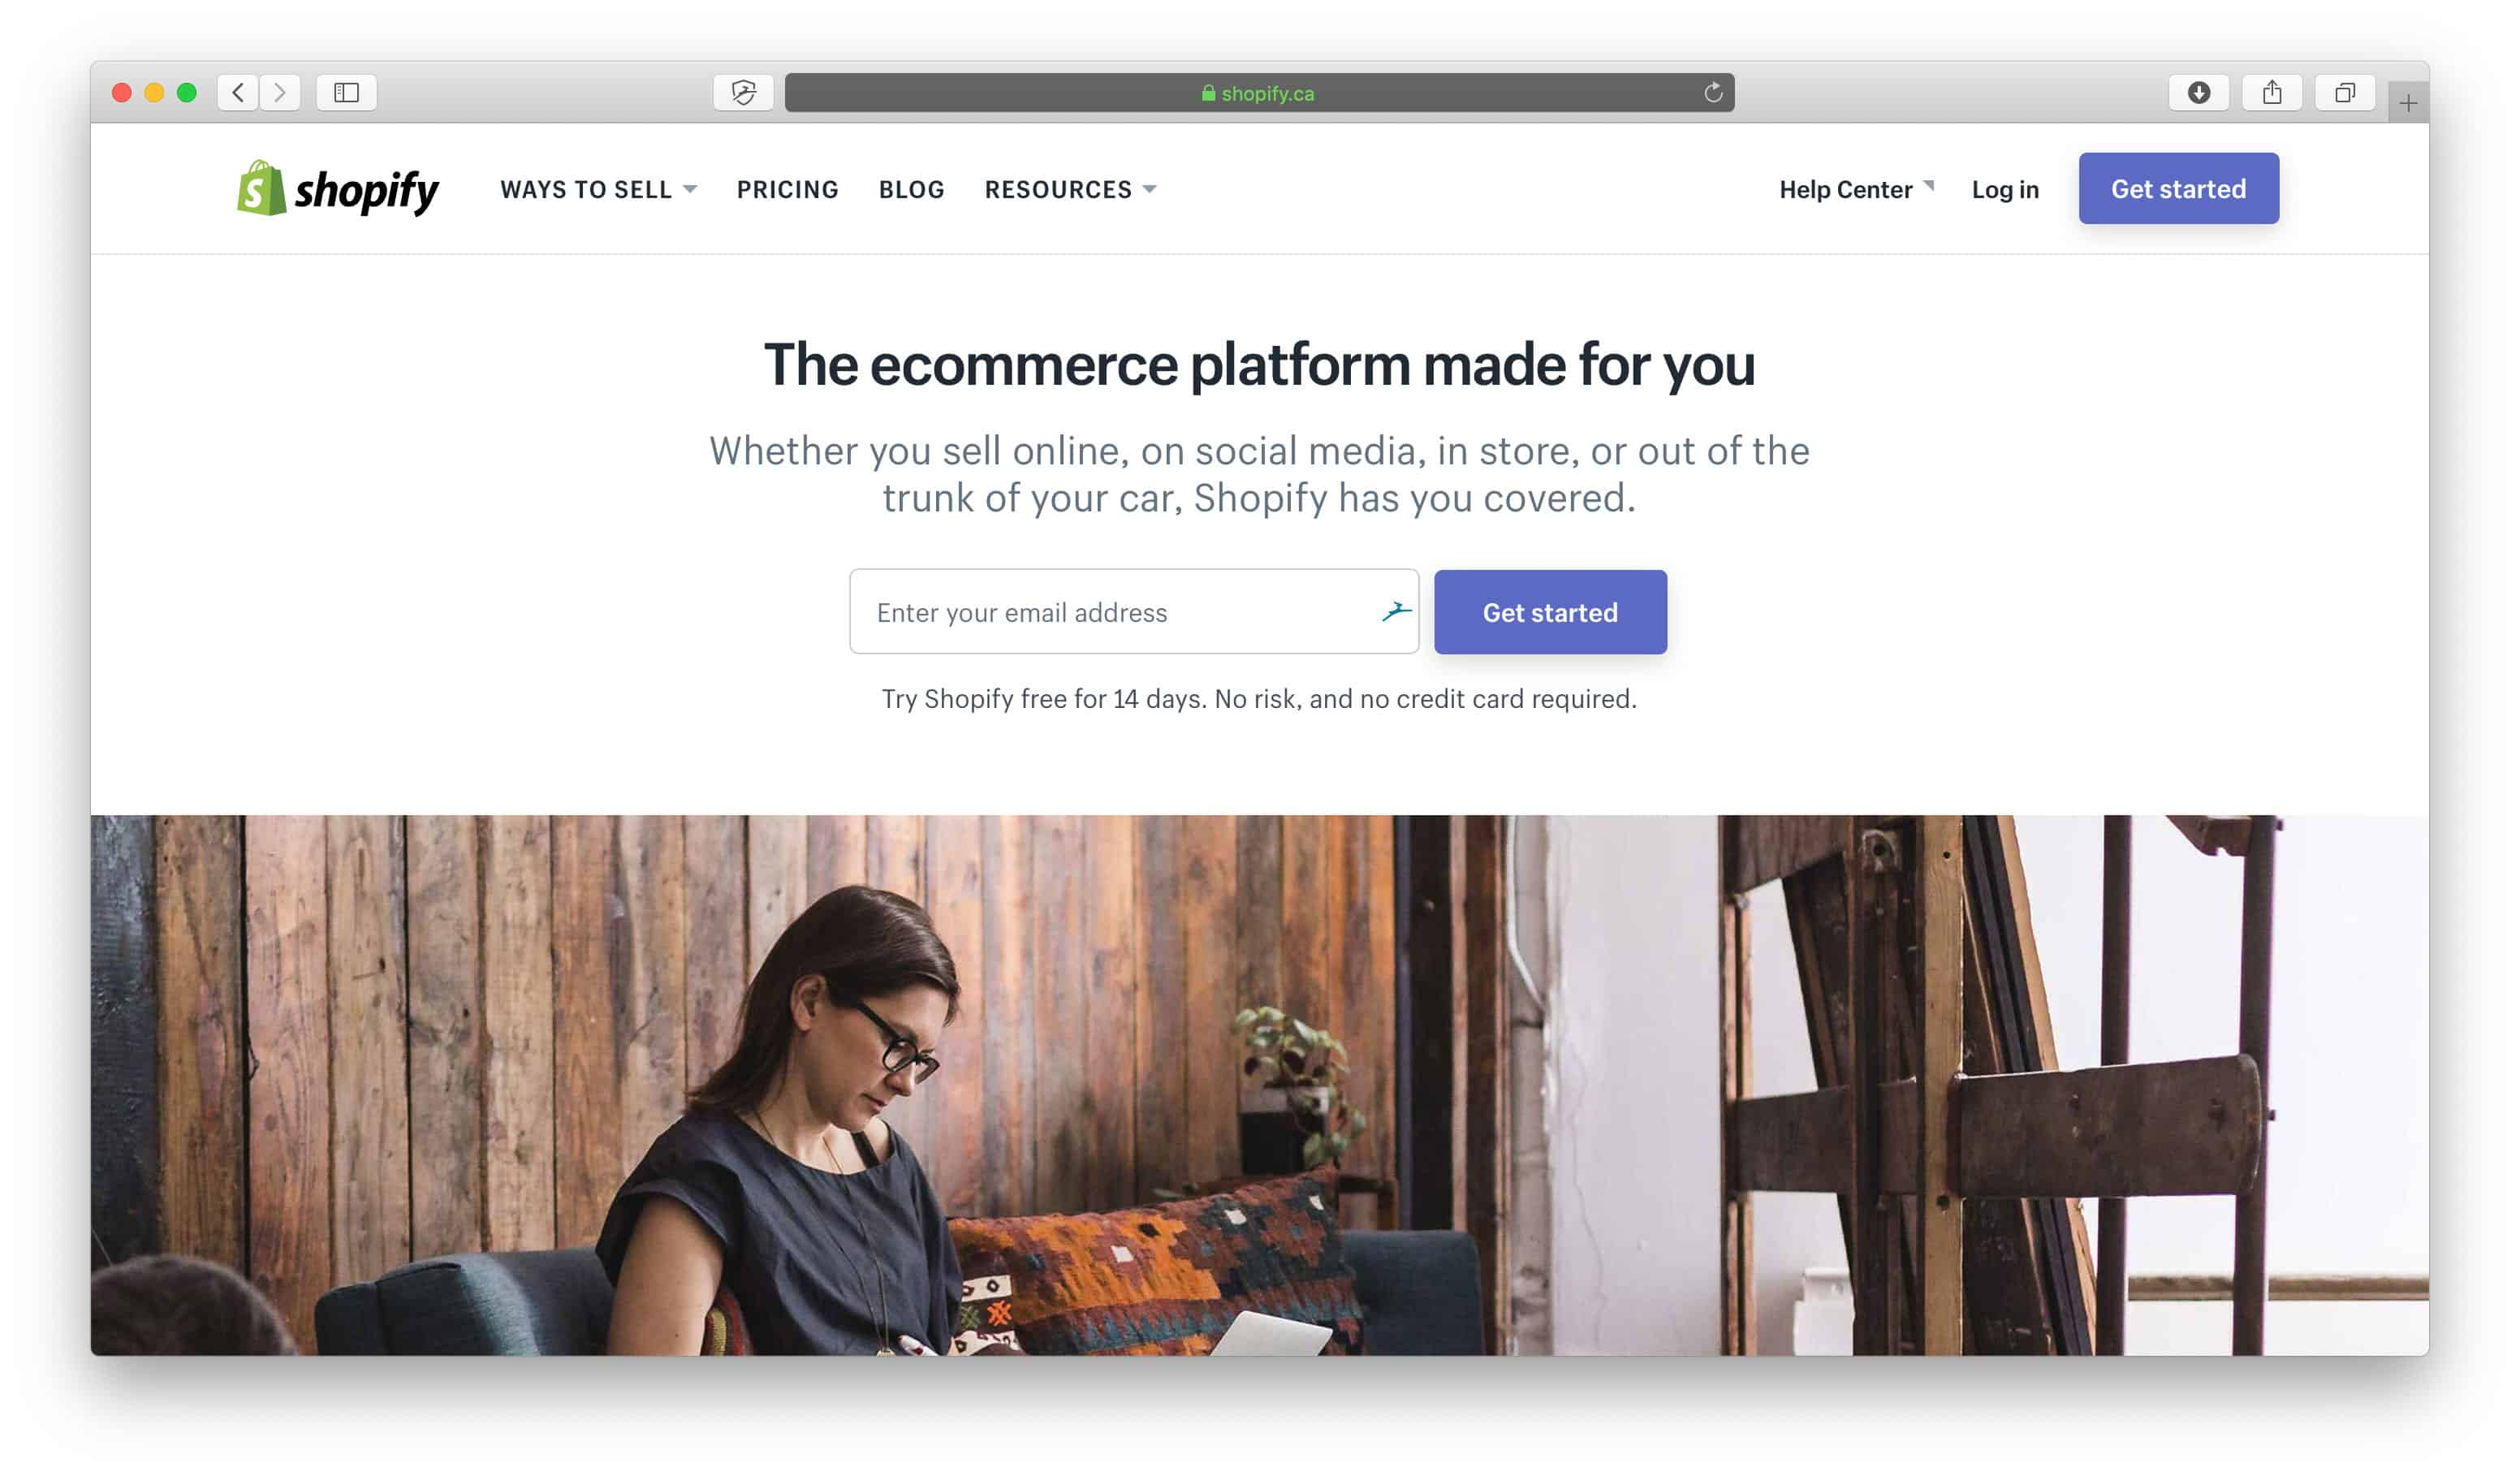 4 Key Ways To Gain Customer Trust As An Ecommerce Business